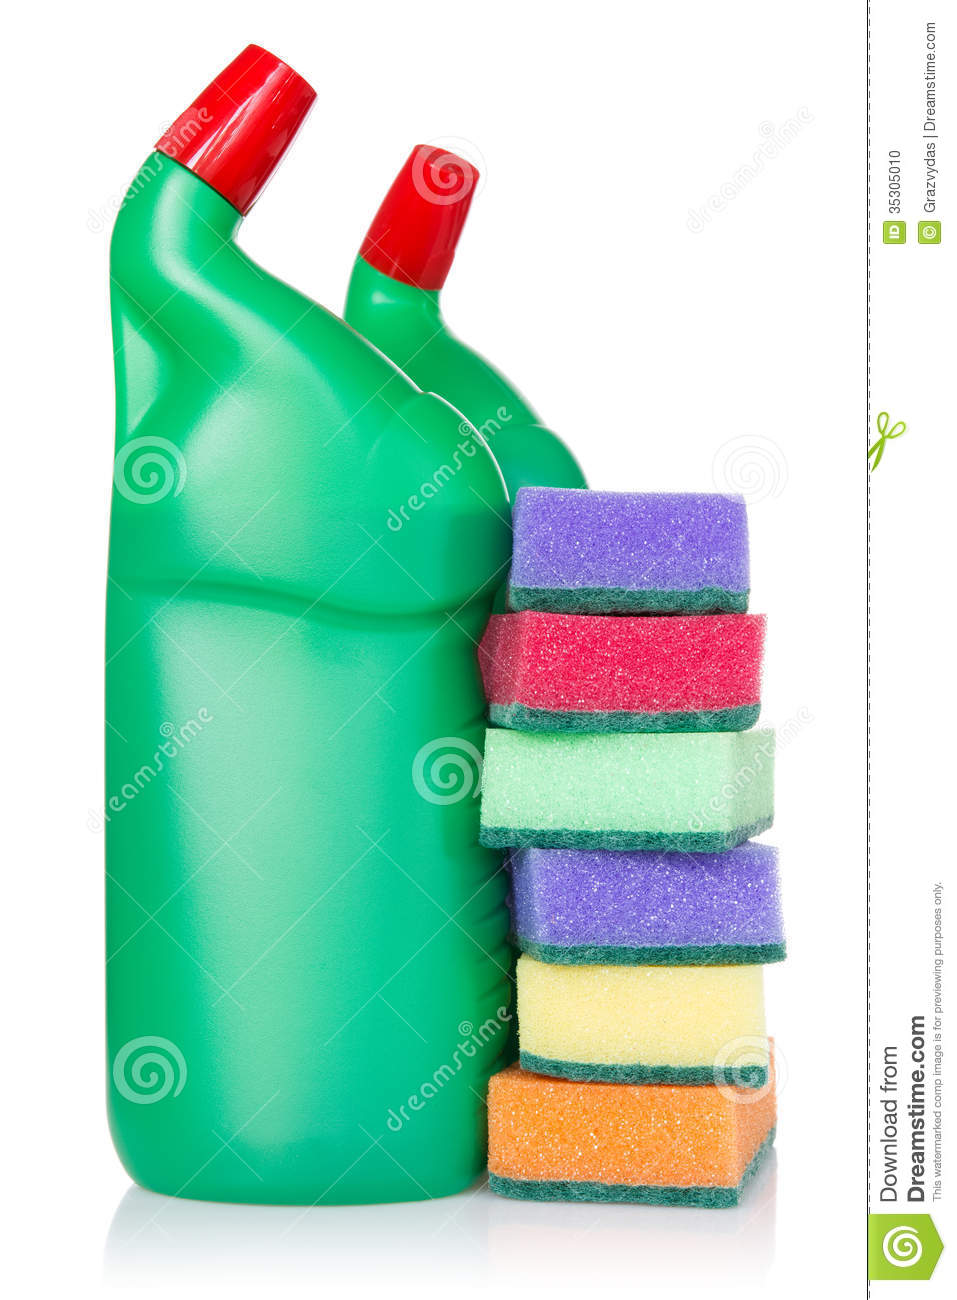 Plastic bottles of cleaning products and kitchen sponges stock photo image 35305010 - Cleaning products for kitchen ...